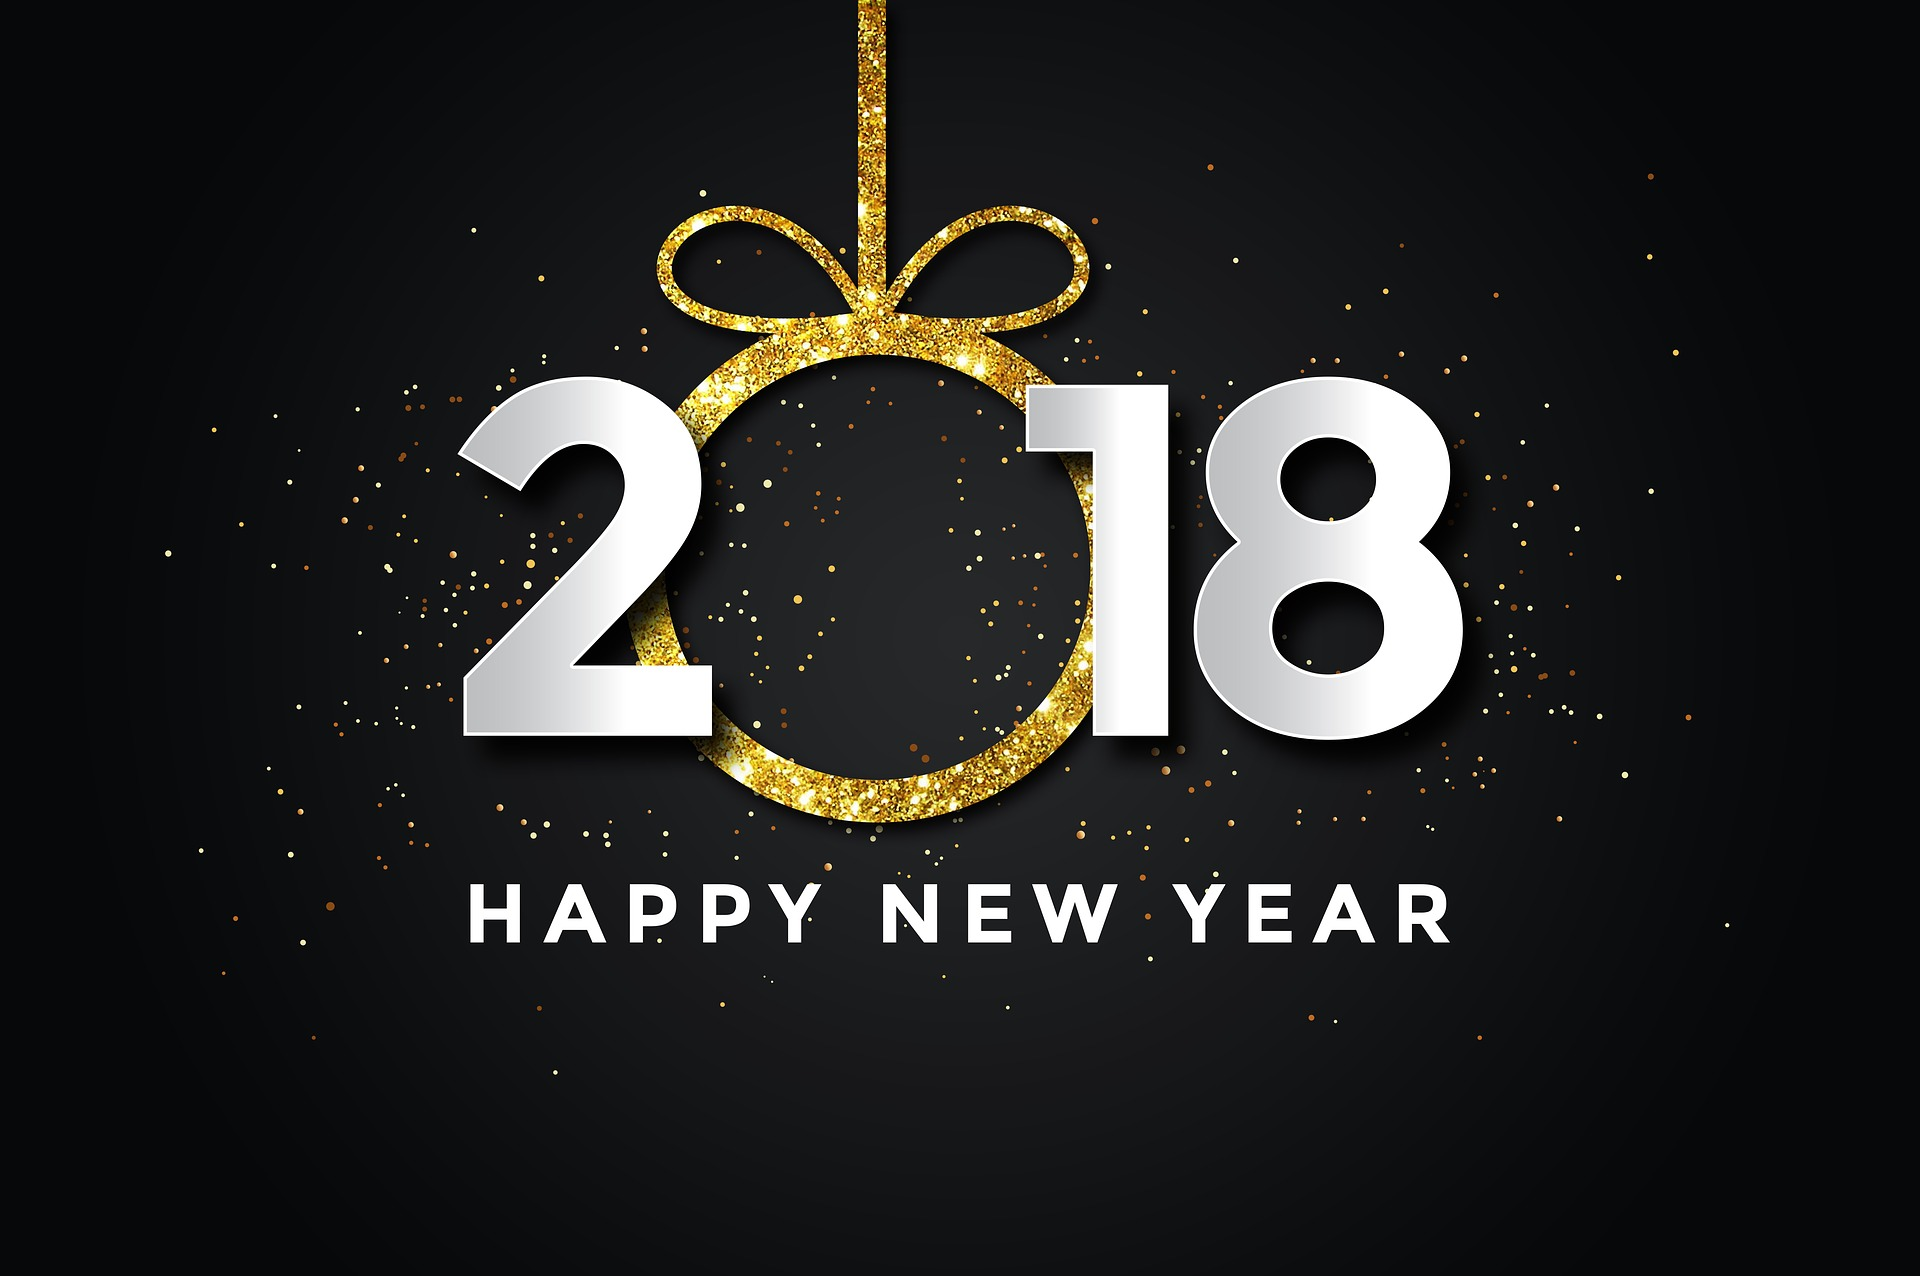 Pf 2018 3031241 1920 A New Year for Gamification